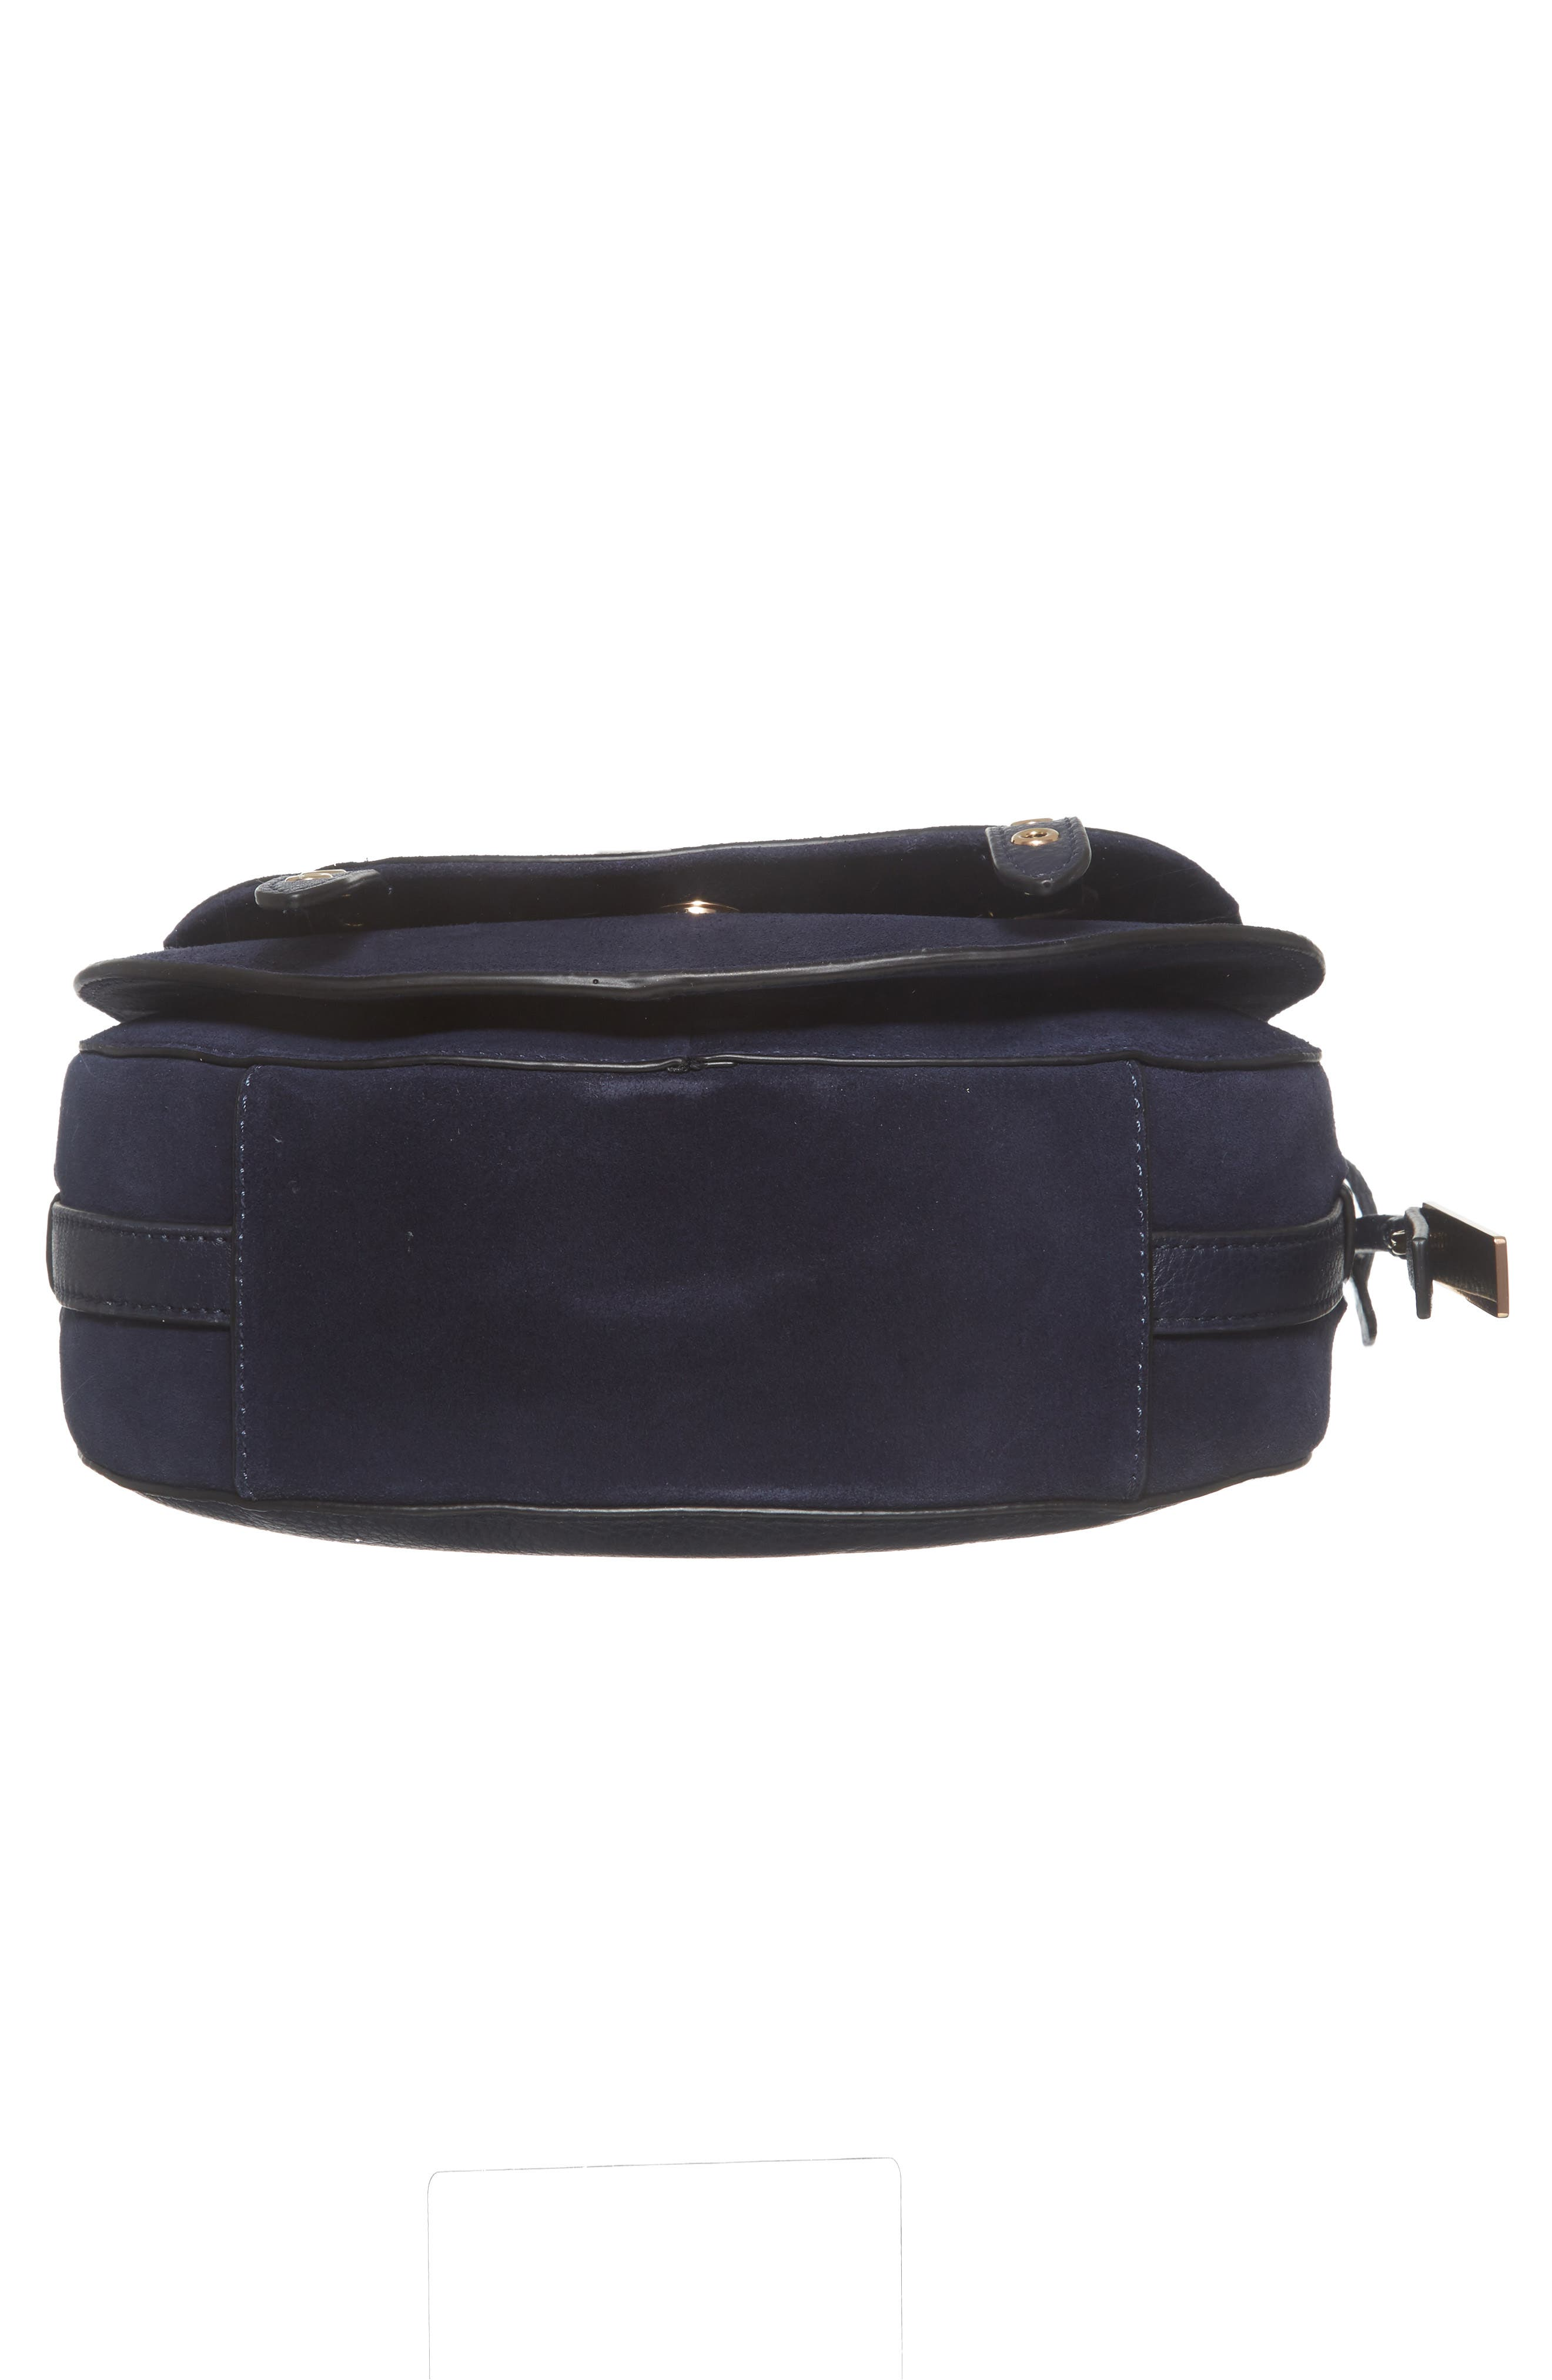 Areli Suede & Leather Crossbody Saddle Bag,                             Alternate thumbnail 6, color,                             Winter Navy